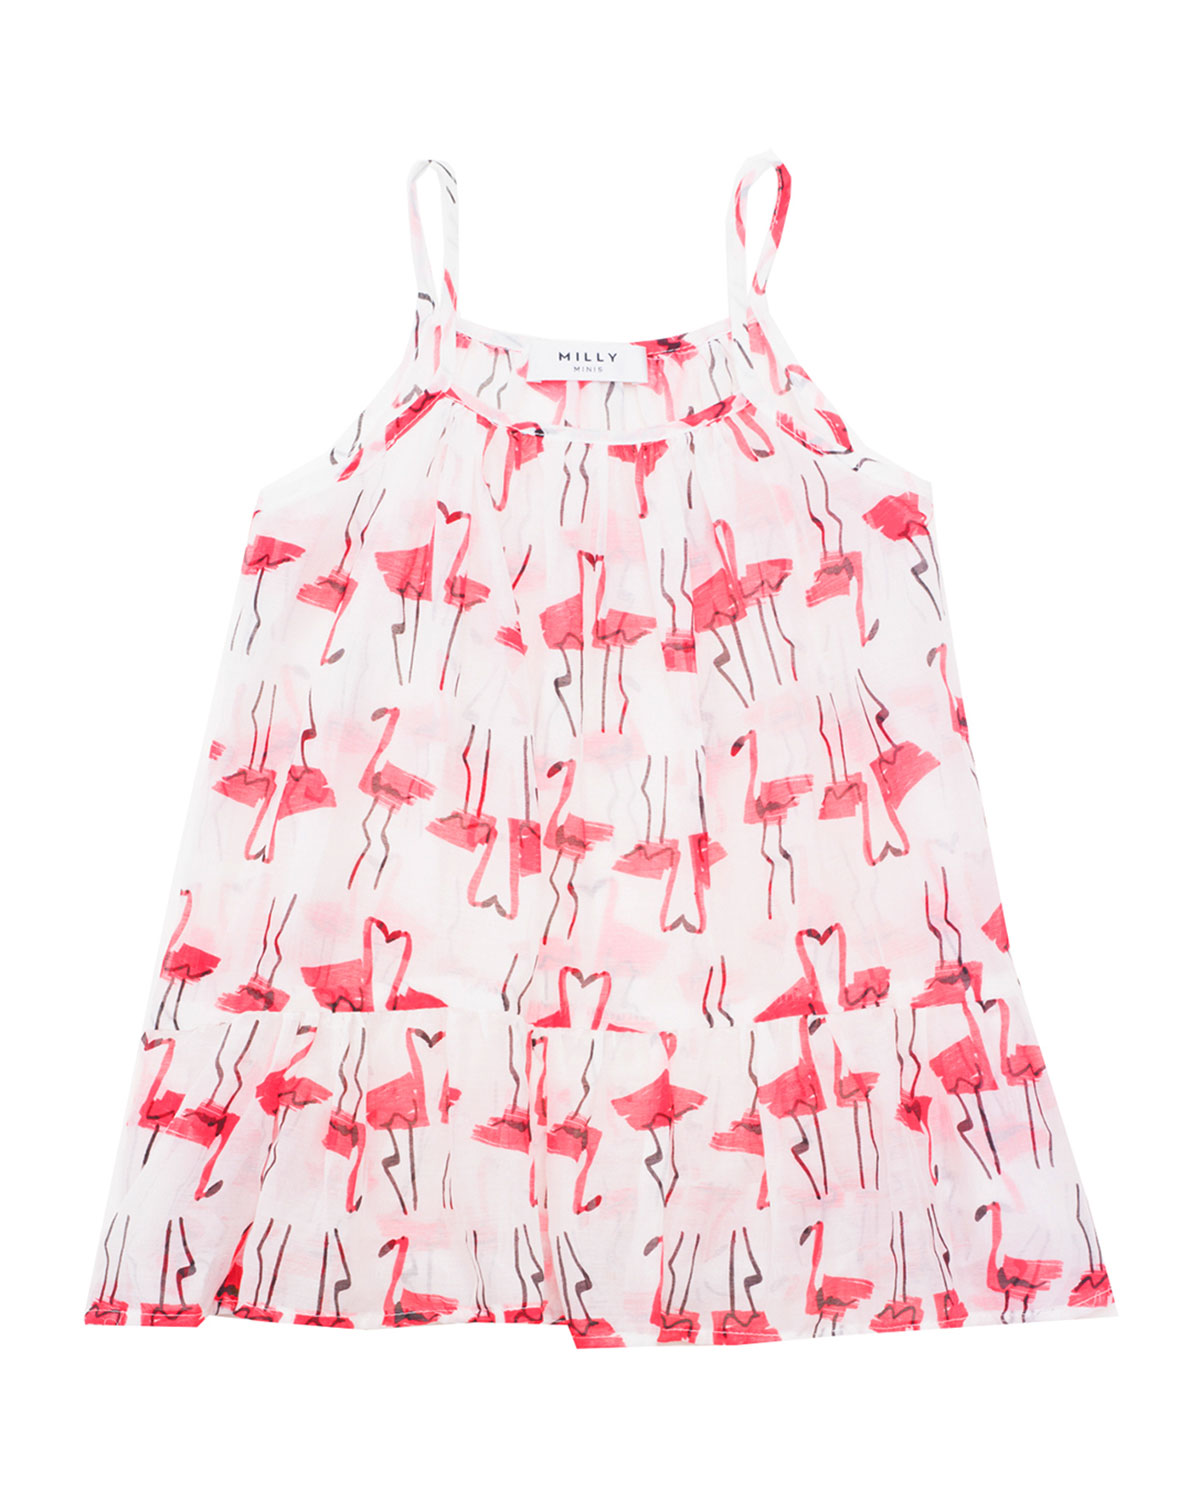 Sleeveless Woven Flamingo-Print Coverup, White/Pink, Size 4-7, Girl's, Size: 4/5, Multi Colors - Milly Minis